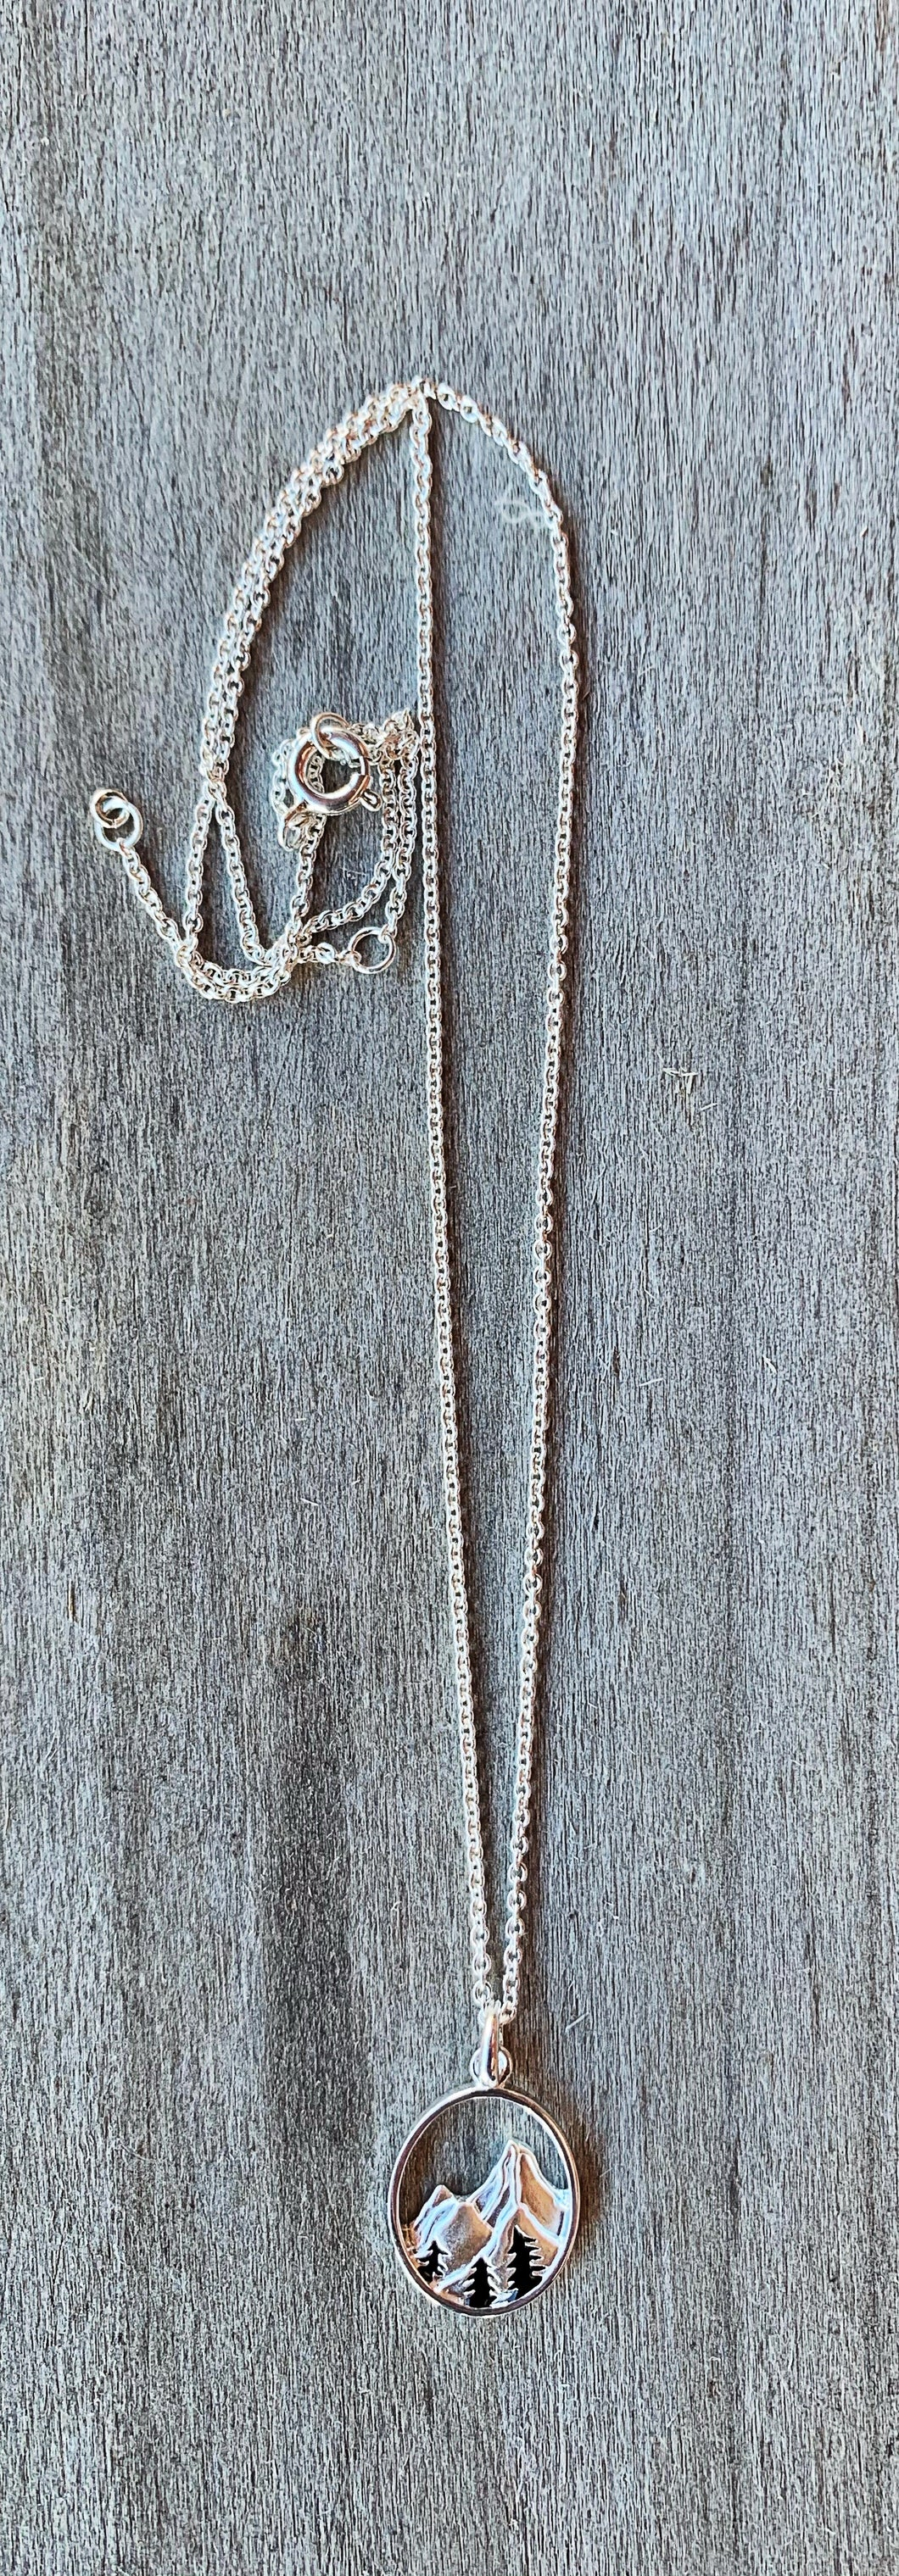 Pine Tree Mountain Necklace